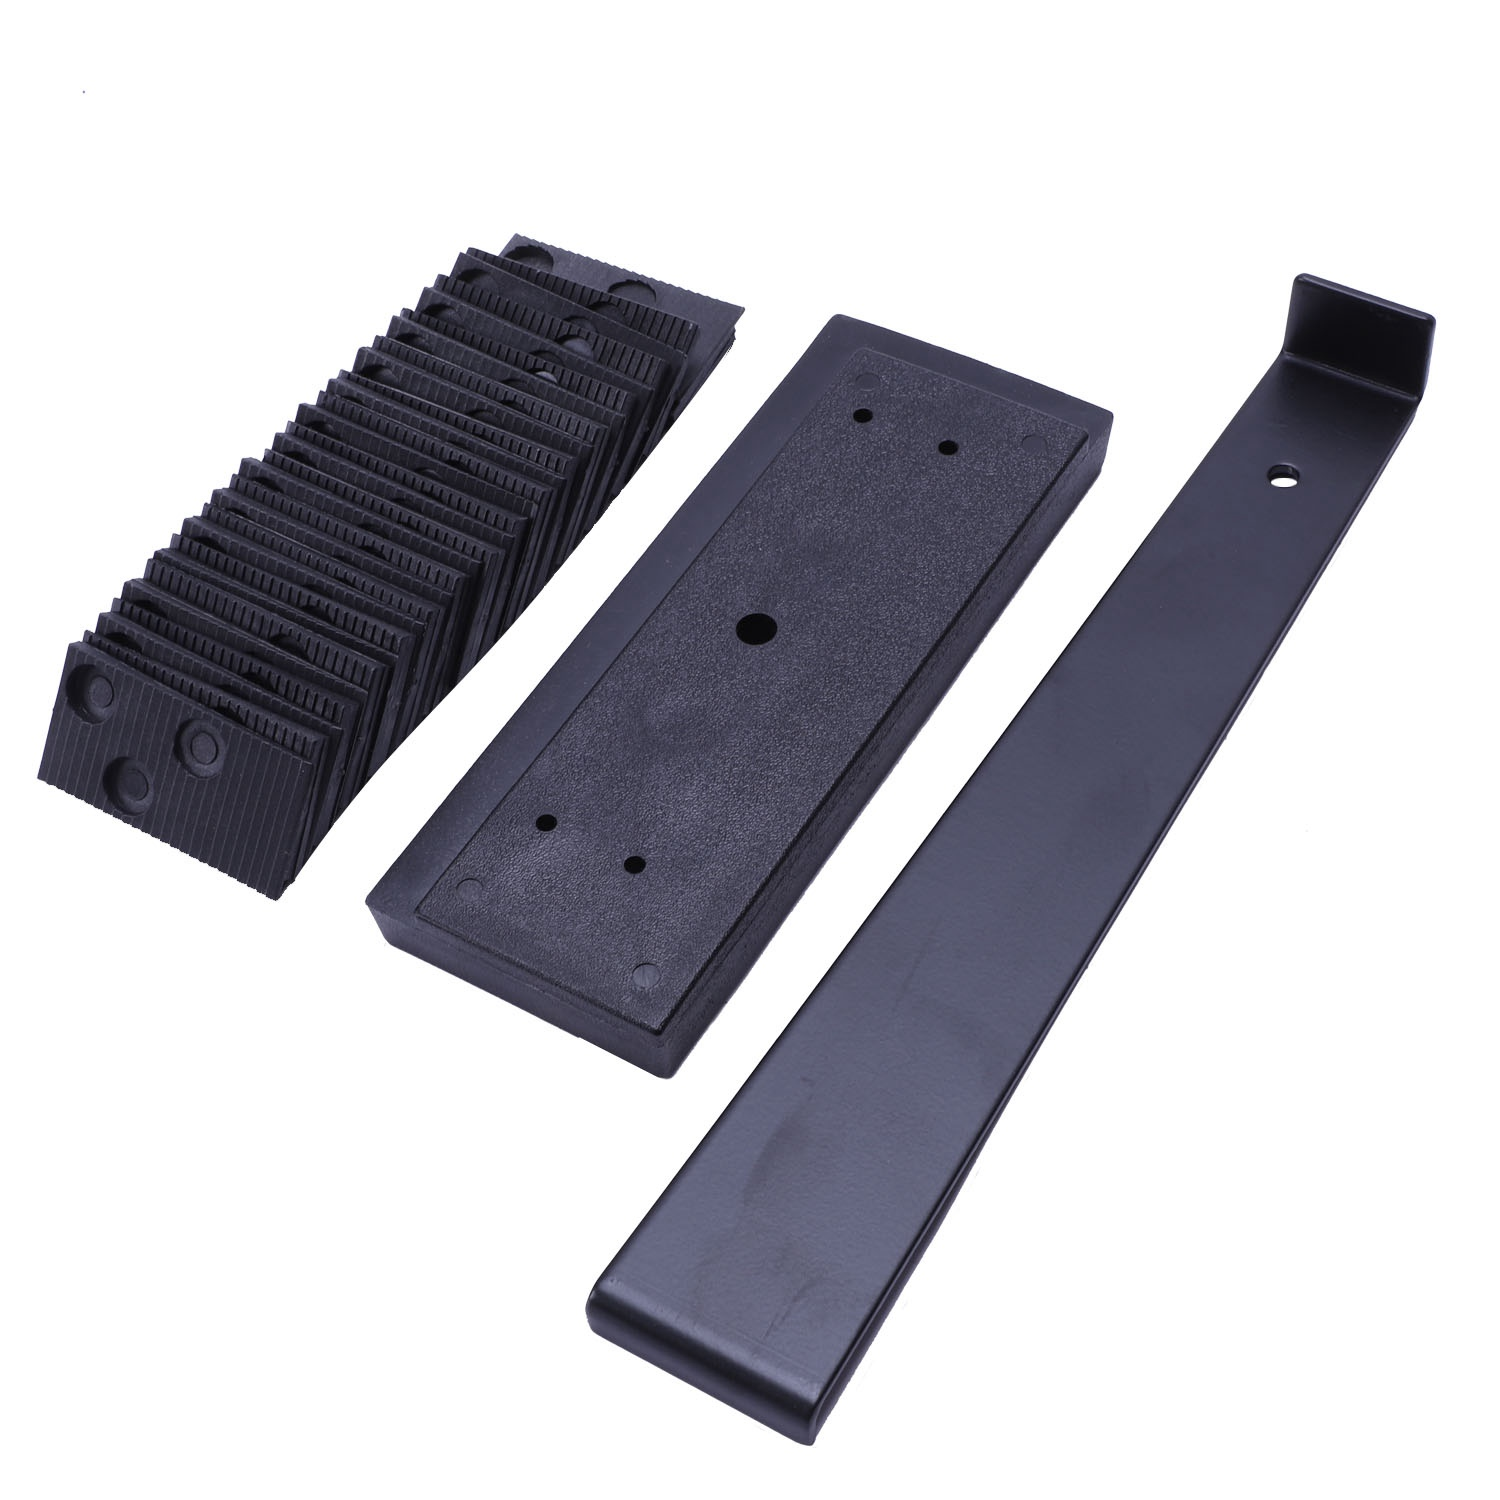 10-26 Laminate Flooring Installation Kit With Tapping Block Pull Bar And 30 Wedge Spacers Construction Tools